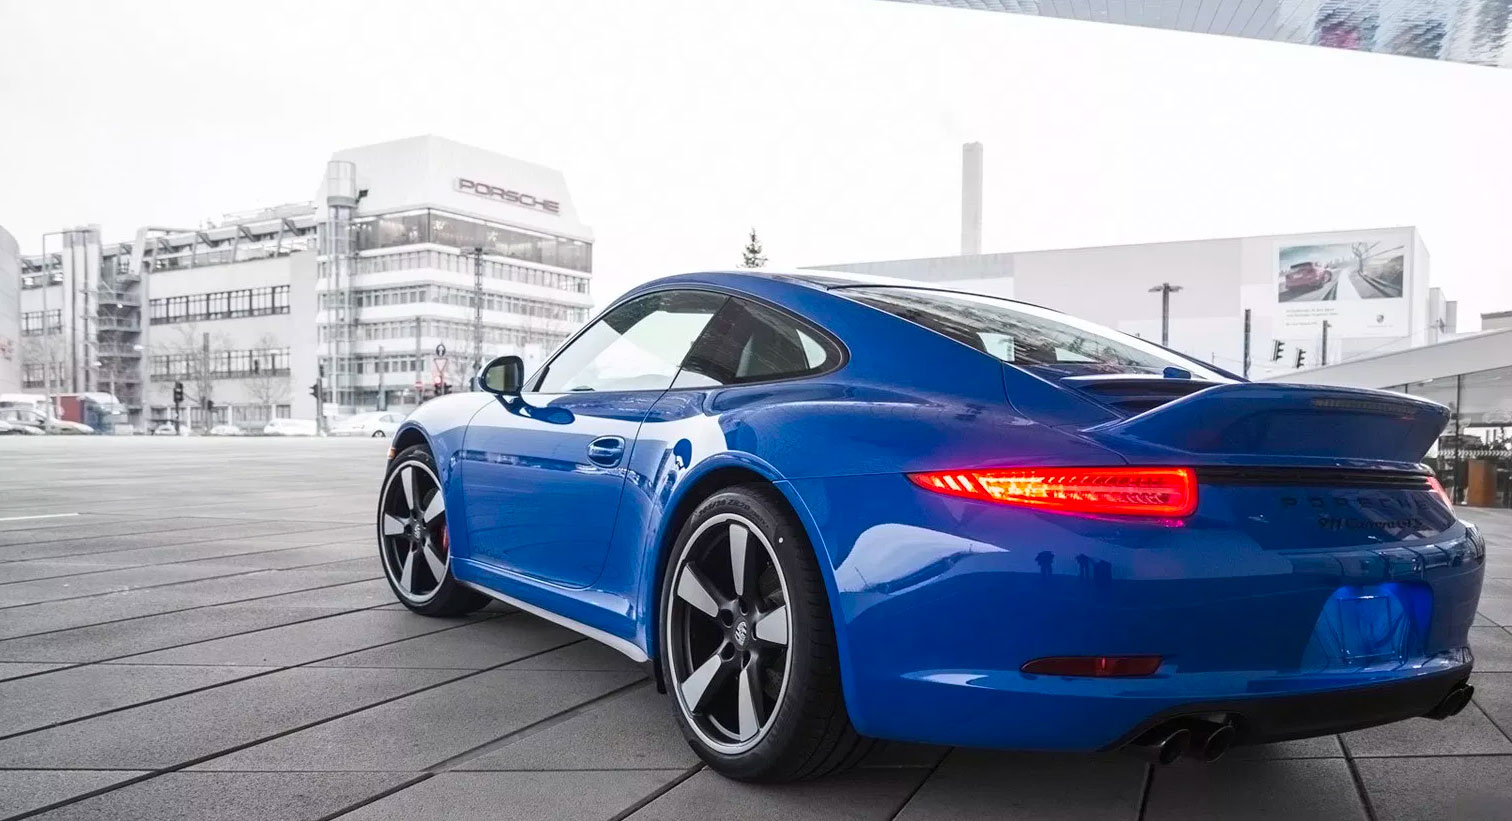 Porsche-911-GTS-Club-Coupe-3